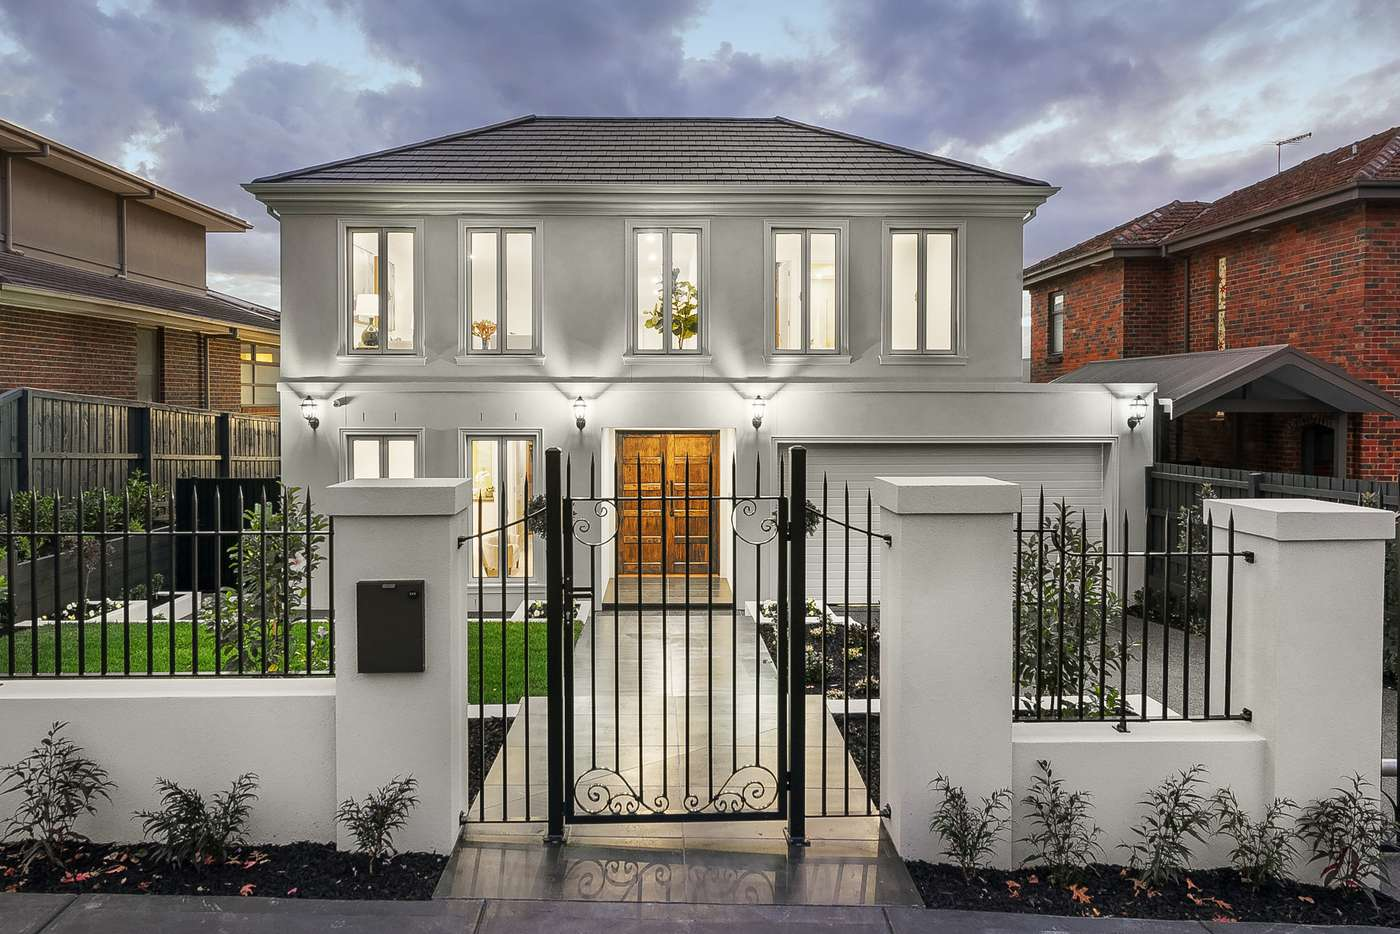 Main view of Homely house listing, 28 Mountain View Road, Balwyn North VIC 3104